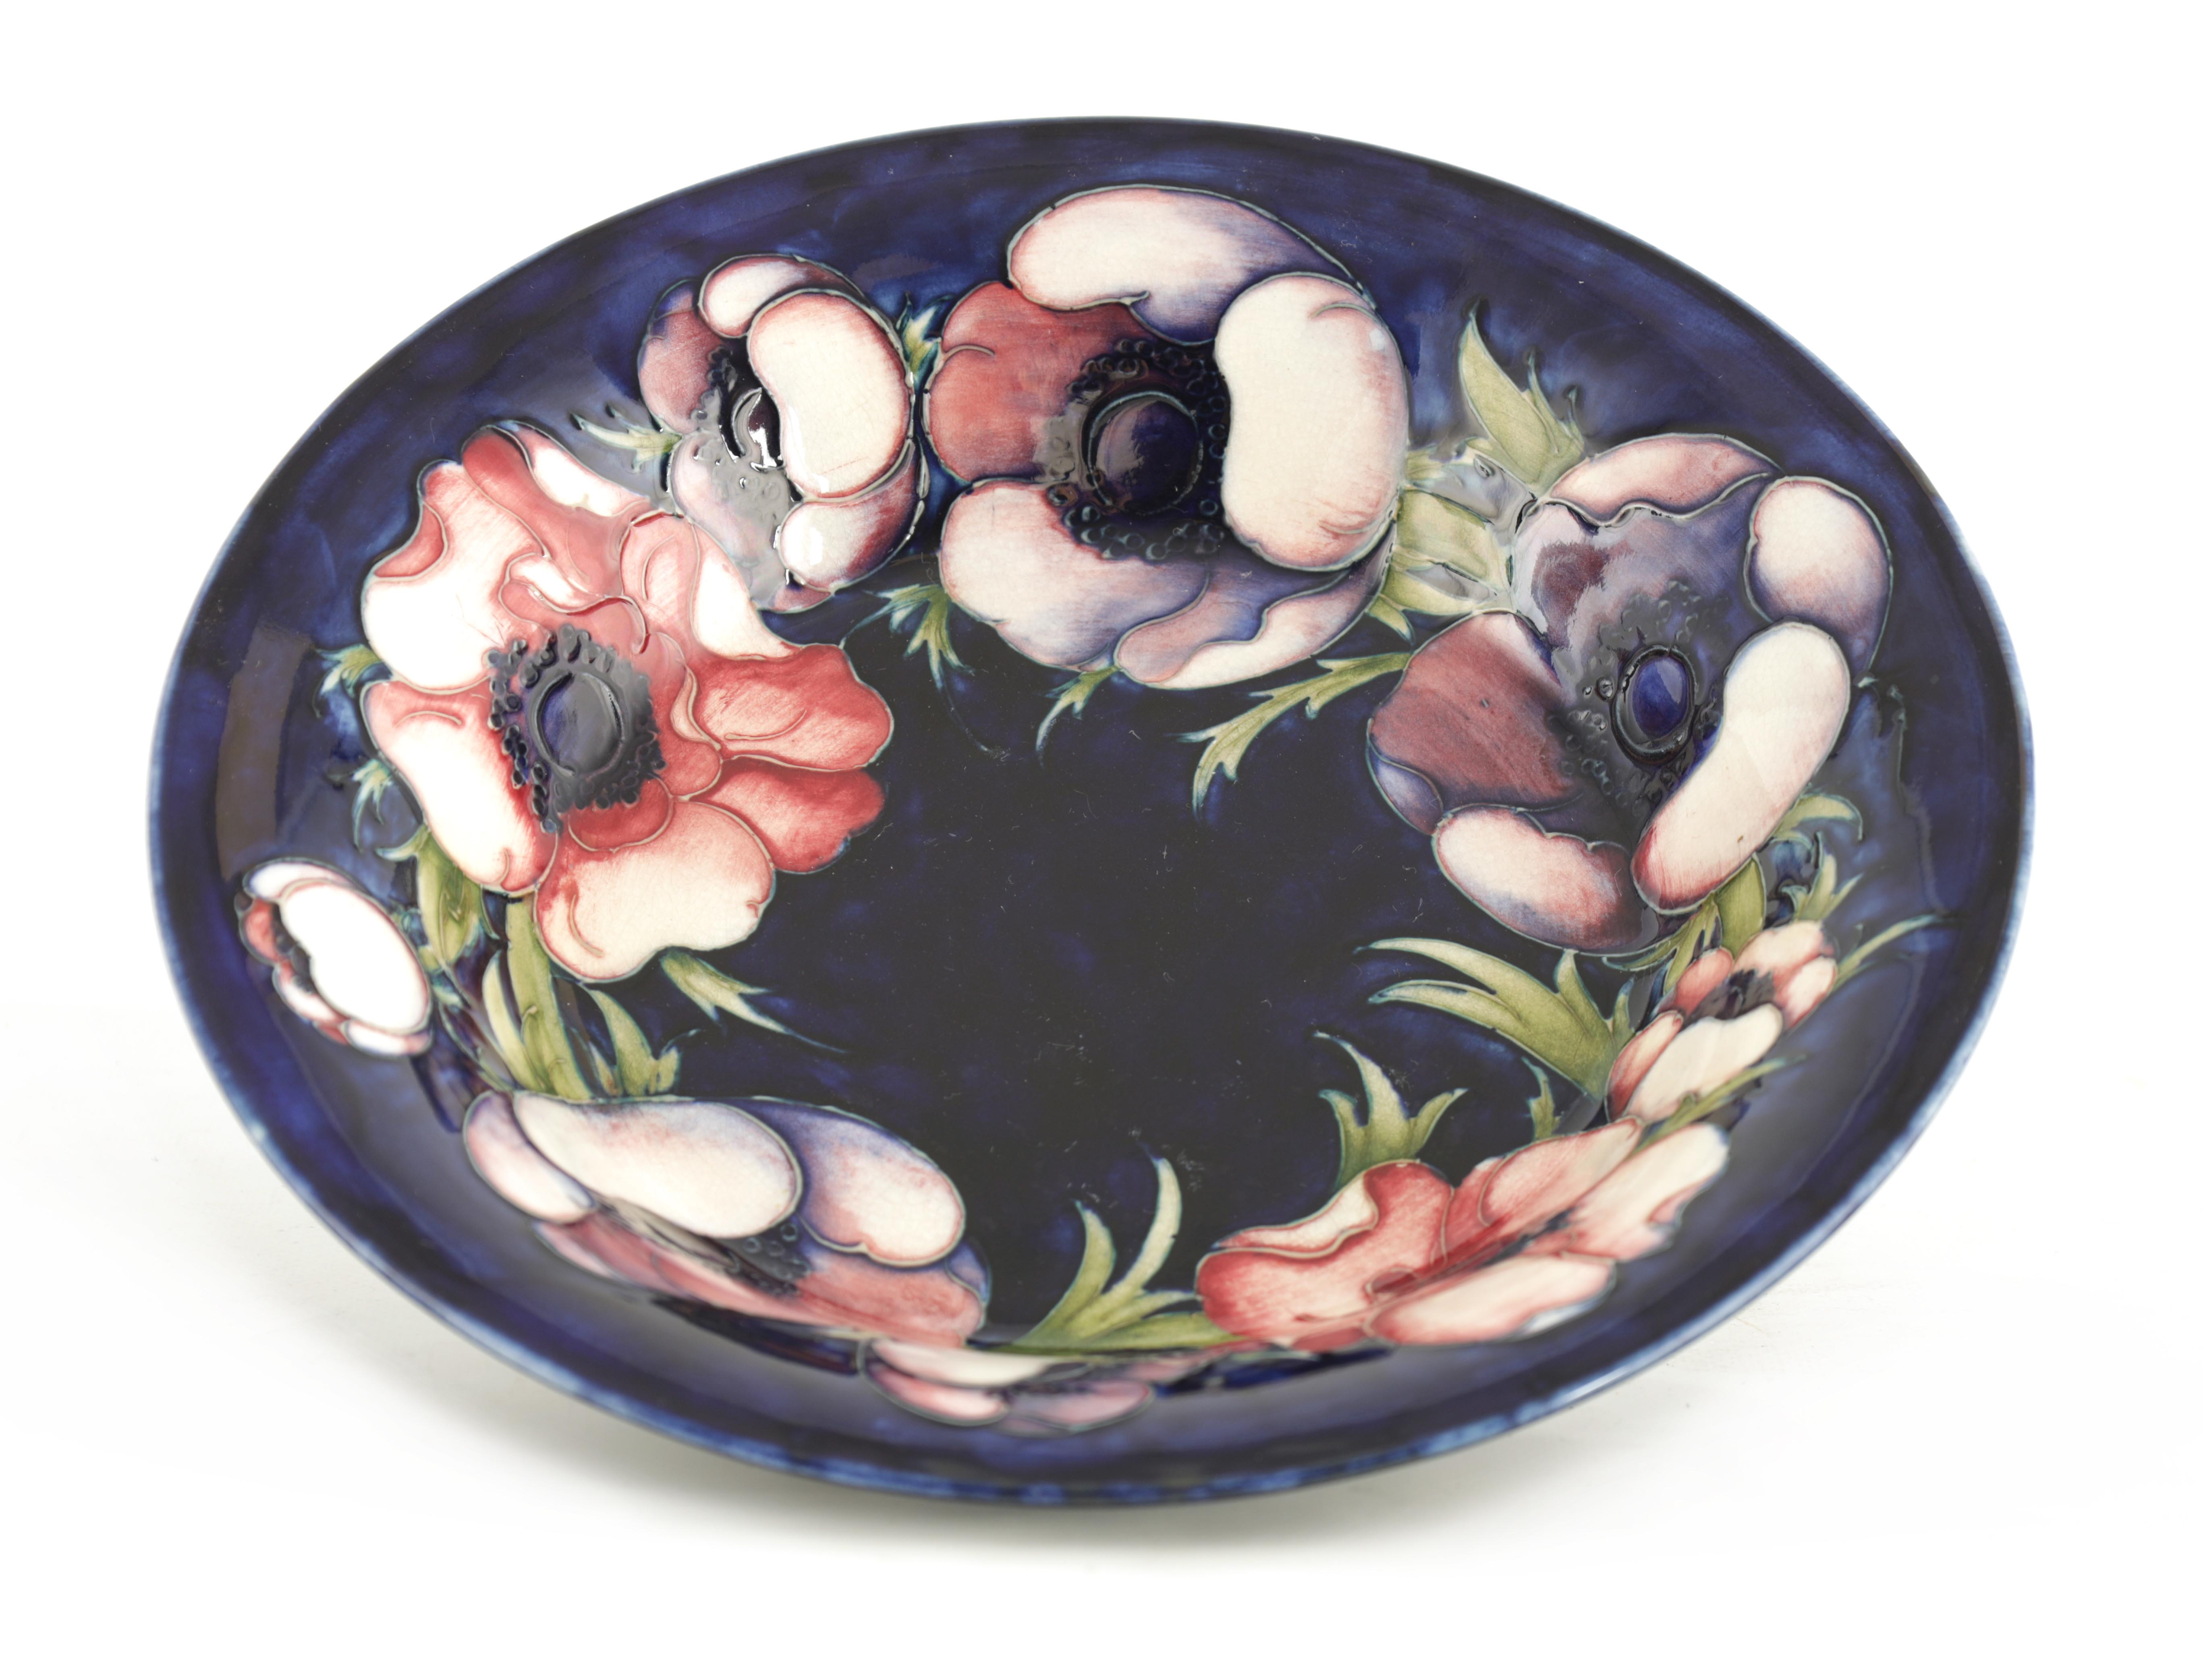 A 1930S MOORCROFT LARGE SHALLOW BOWL WITH EVERTED RIM tube lined and decorated with a band of